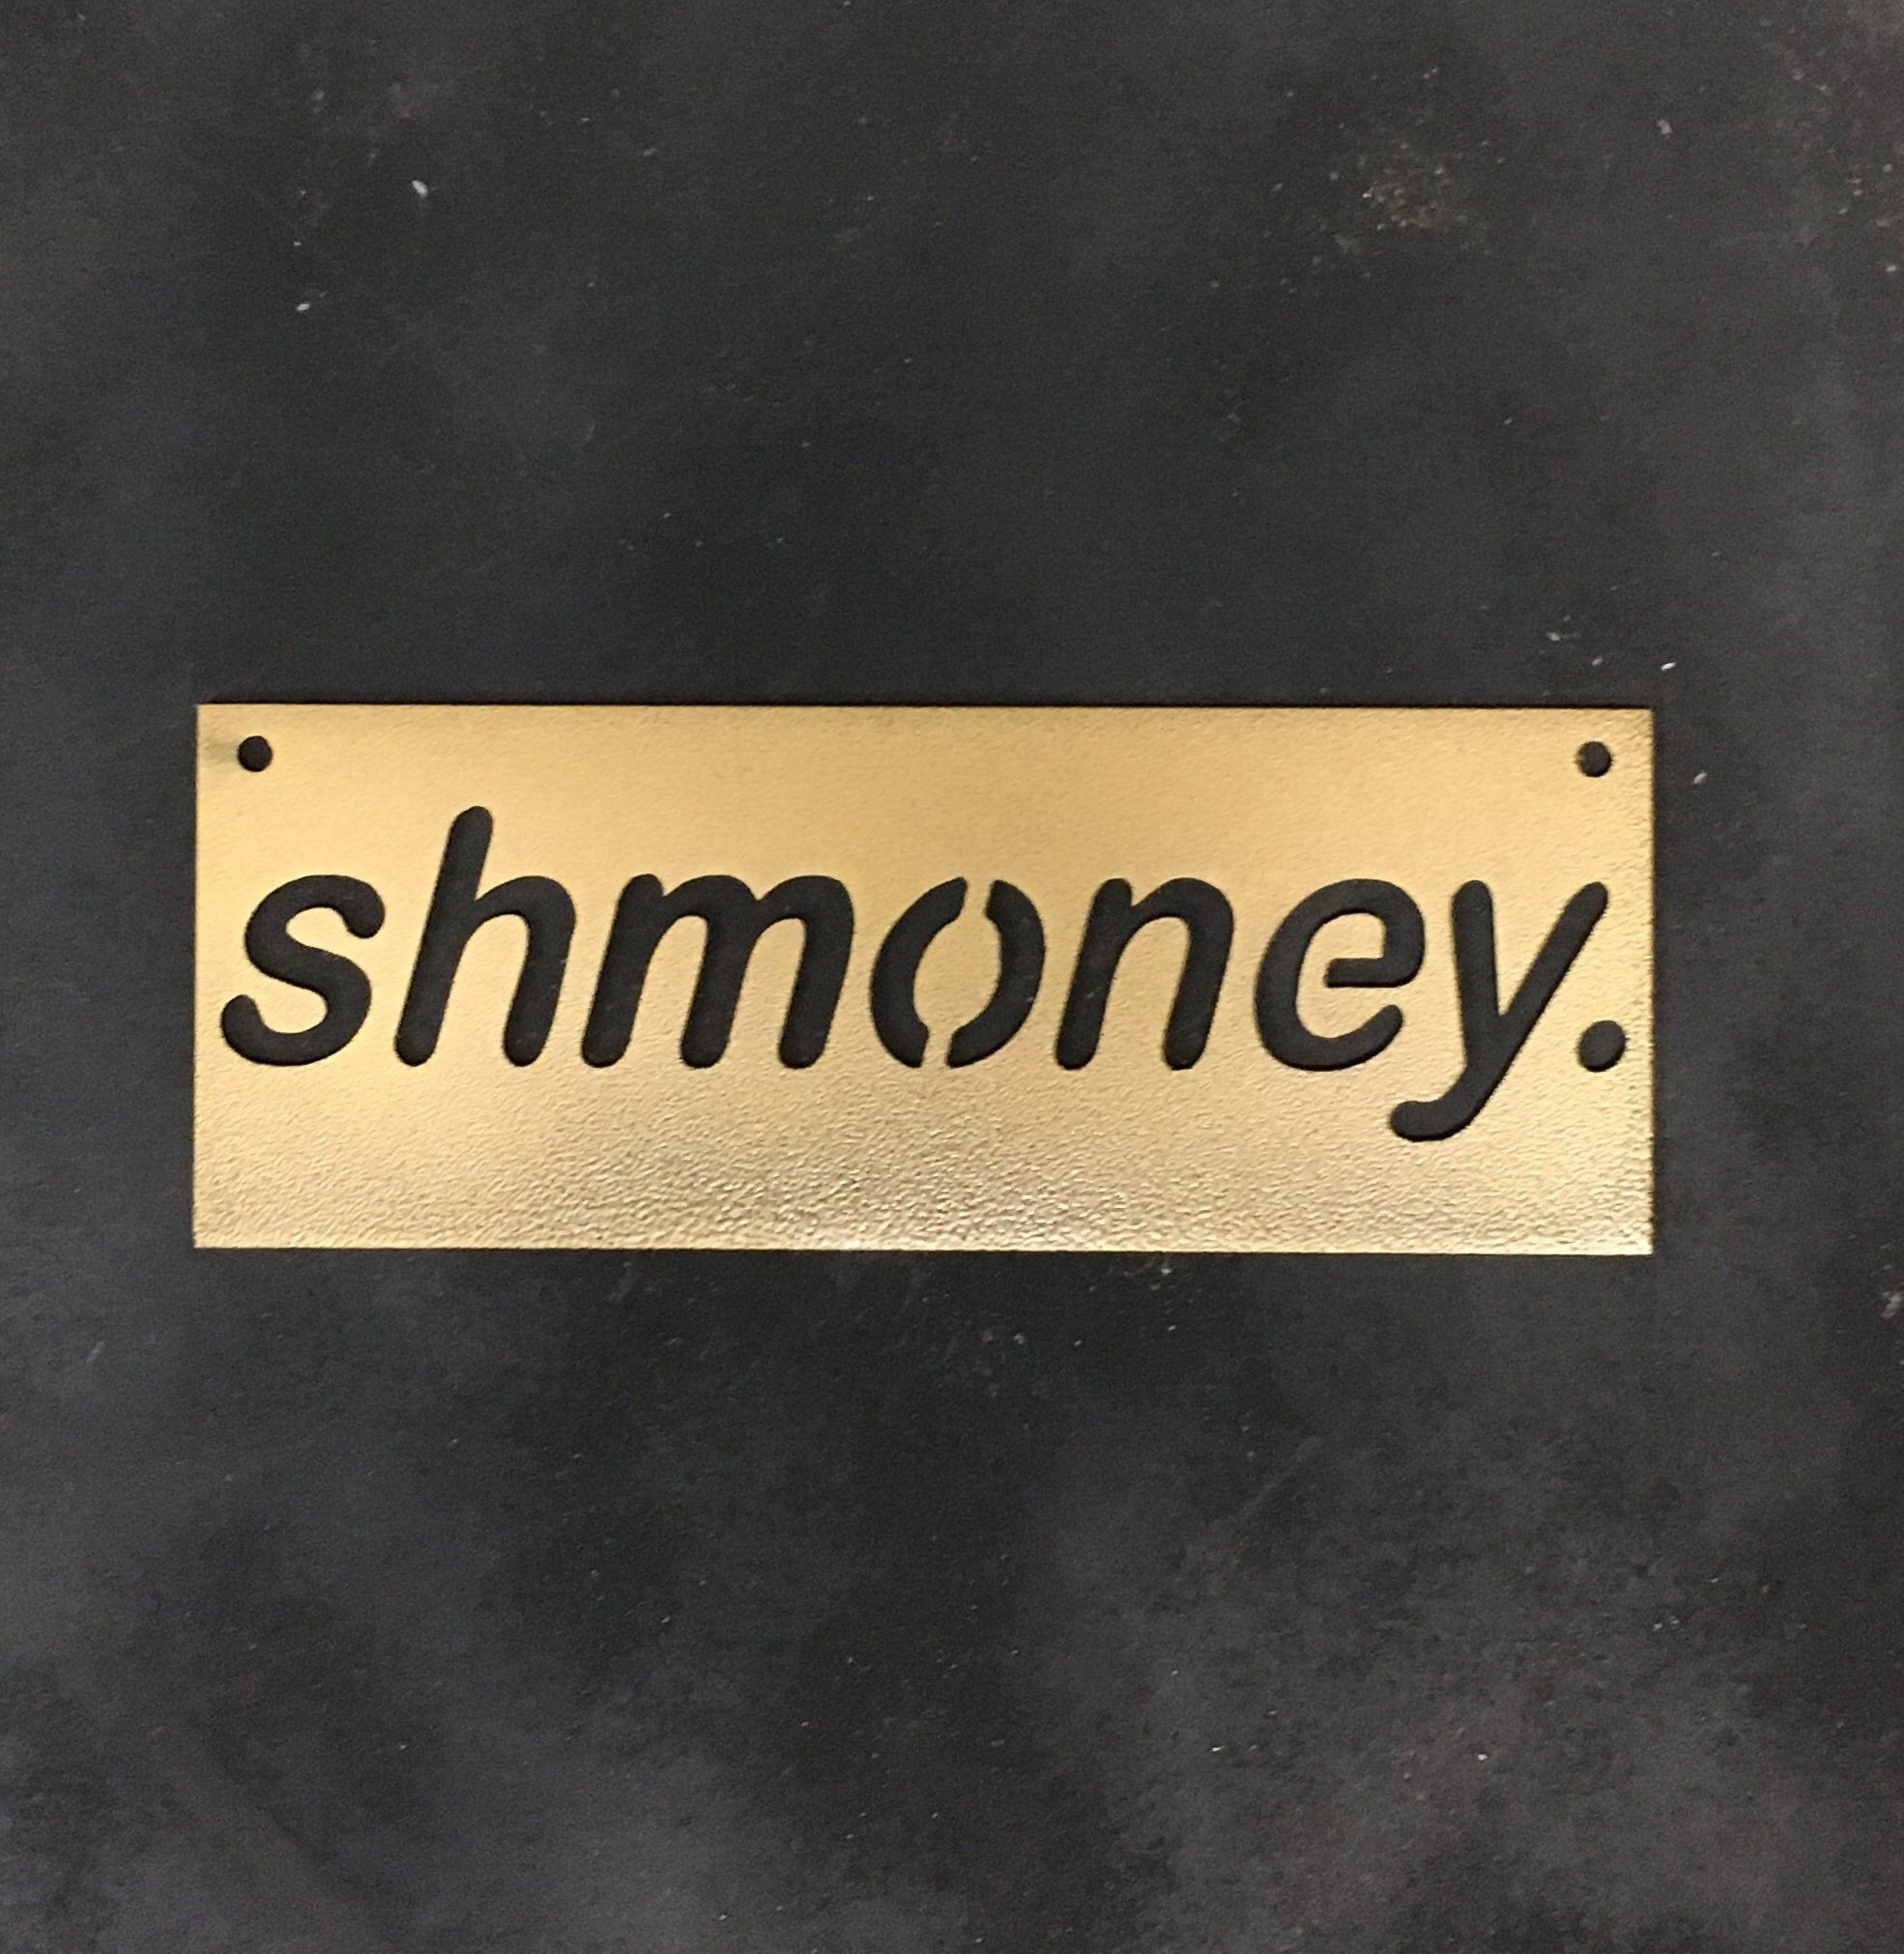 Shmoney - Quotes - Metal signs - Home decor - Metal wall art ...